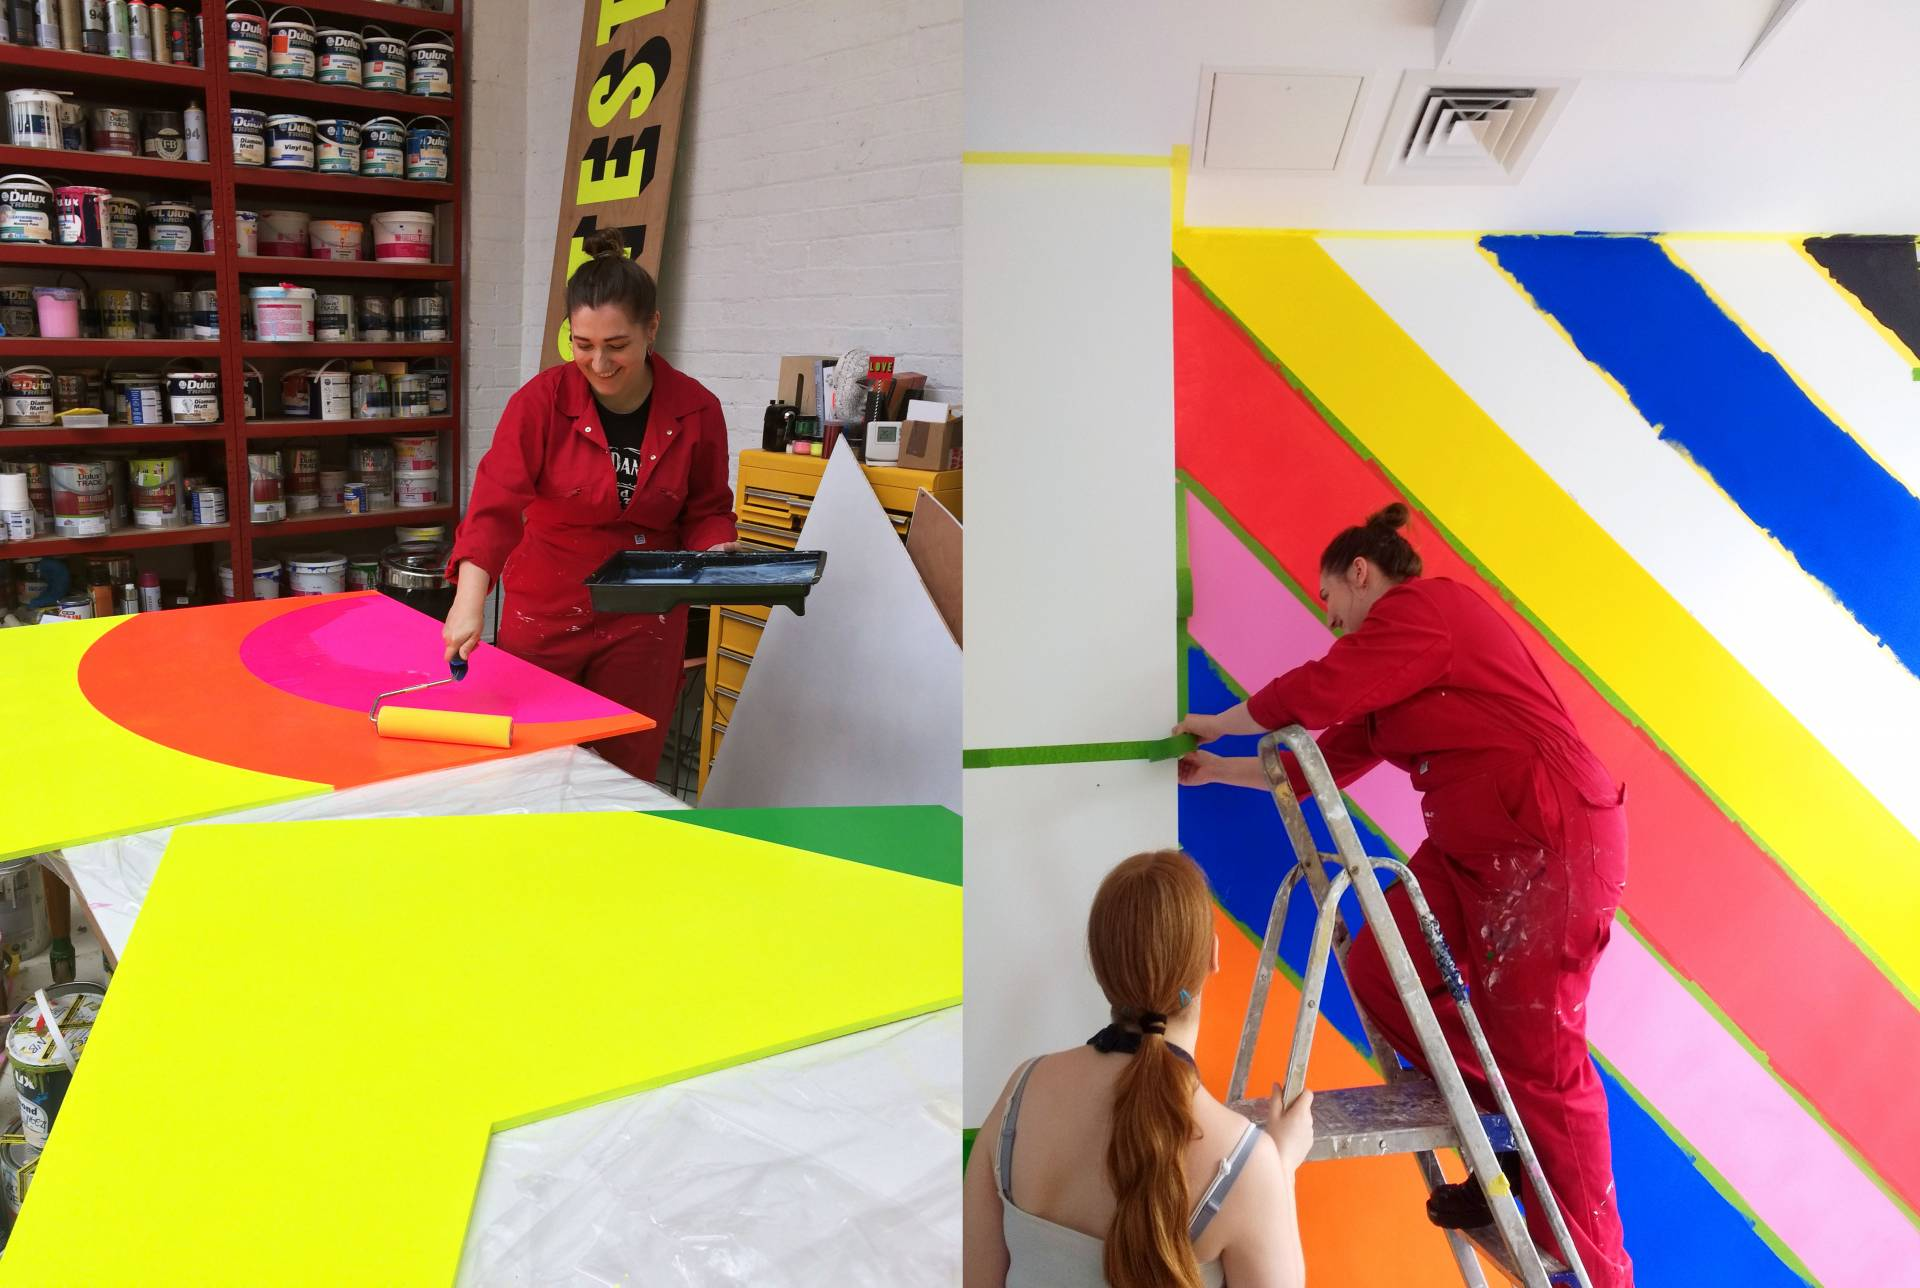 Painting with Morag Myerscough